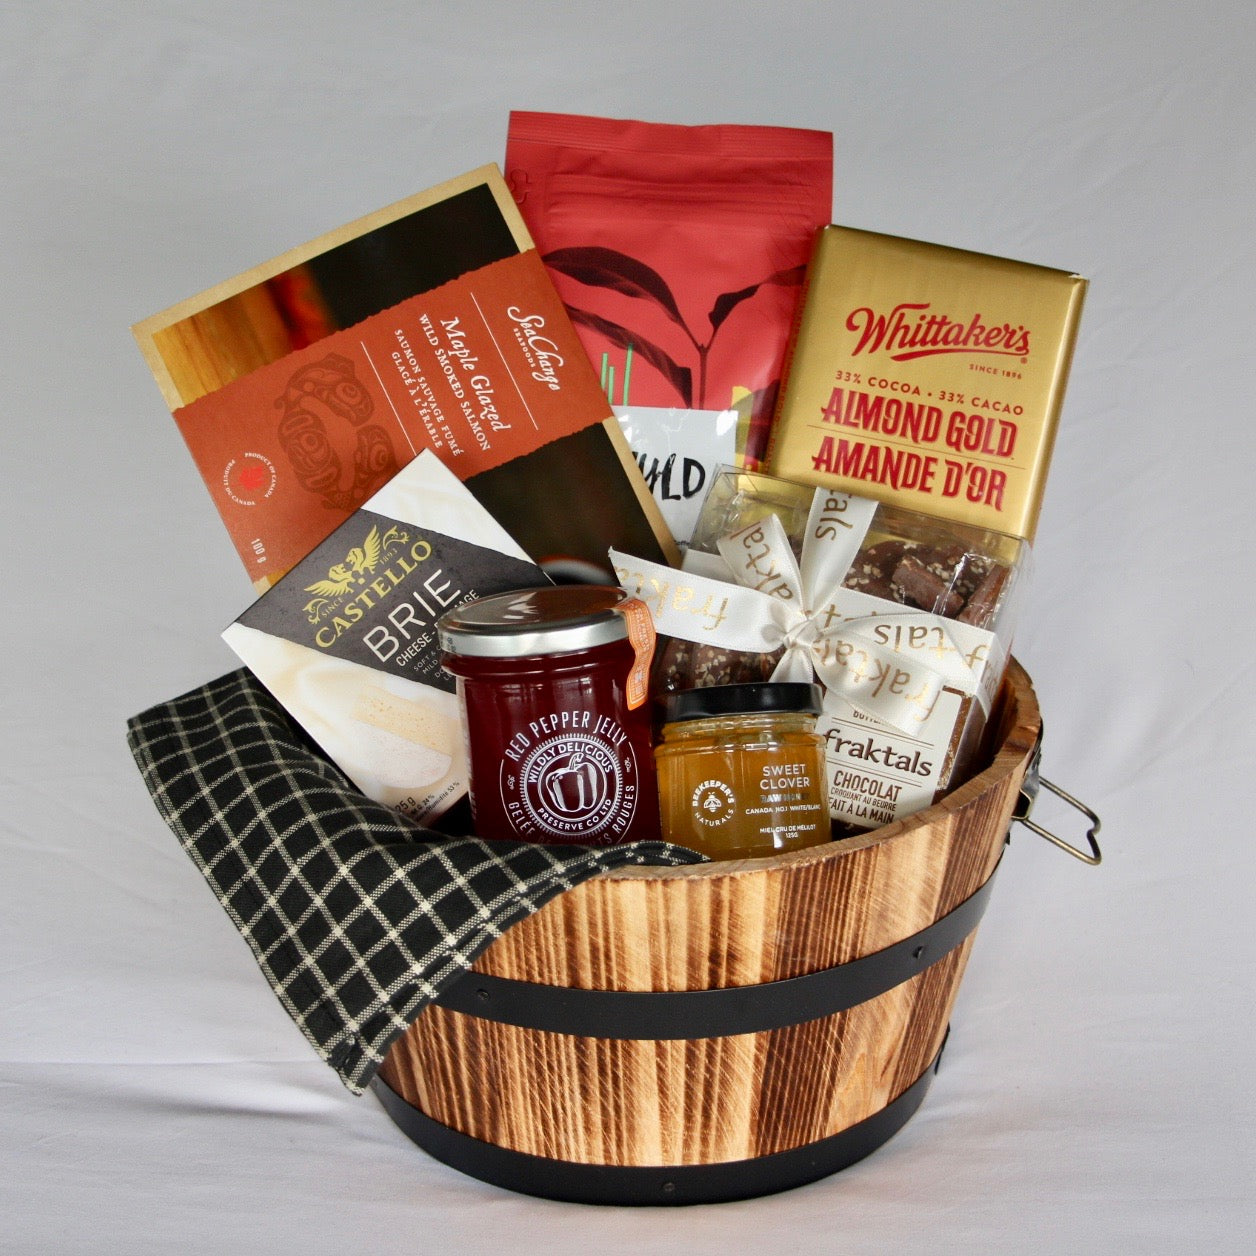 The Perfect Pairings gift basket makes the perfect gift for any occasion. This lovely wood barrel is filled with organic and wholesome products that are sure to be enjoyed by anyone. Coffee + Chocolate & Honey Glazed Smoked Salmon + Brie Cheese + Red pepper Jelly = 2 Perfect Pairings. The wood barrel and dishtowel are the perfect touch and will be cherished for years to come! We are a Toronto based full service online gift basket shop with a focus on using products from local businesses.